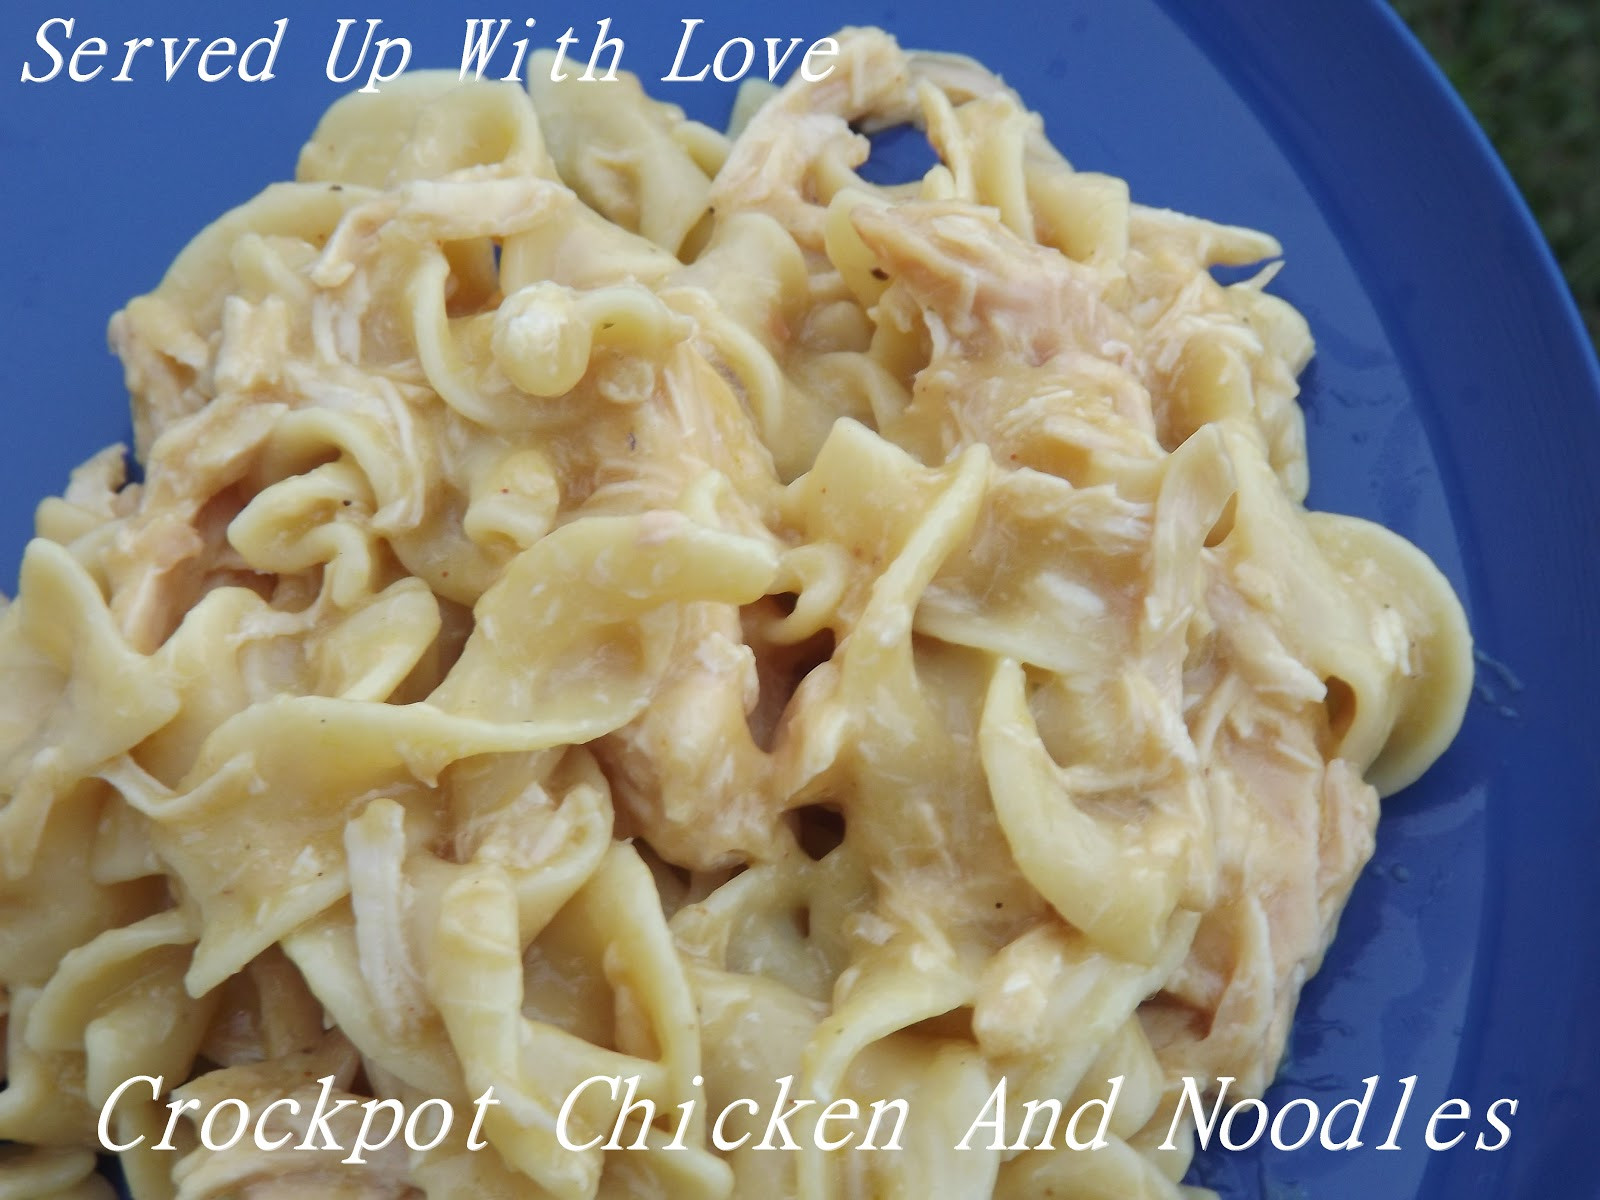 Crockpot Chicken And Noodles  Served Up With Love Crock Pot Chicken and Noodles